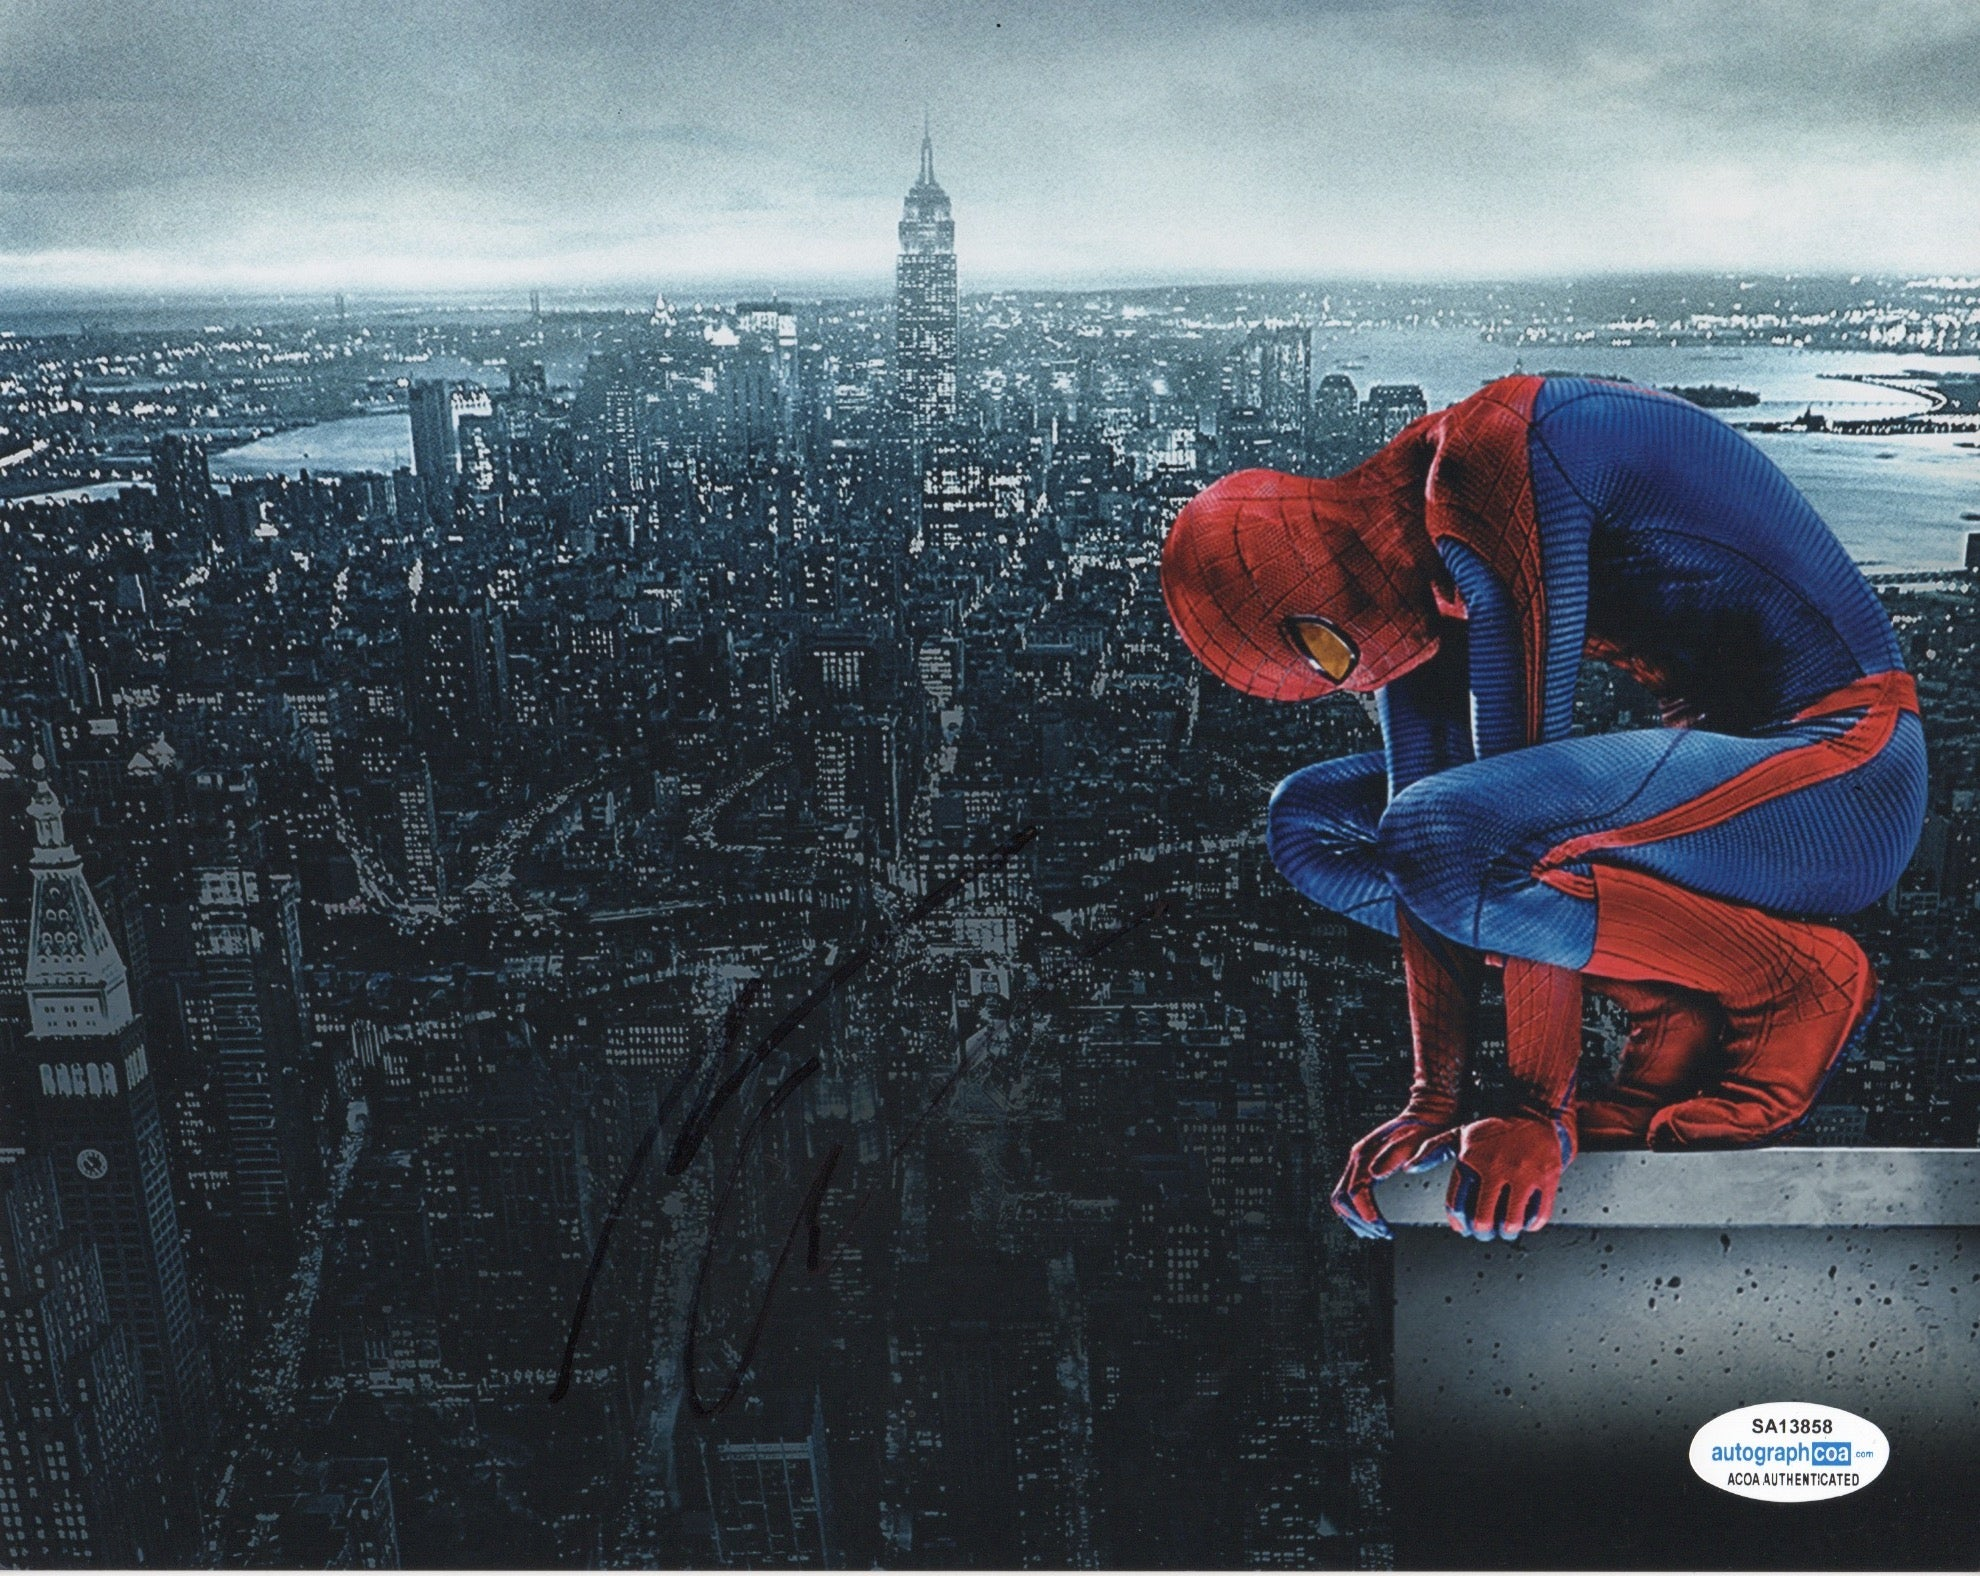 Andrew Garfield Spiderman Signed Autograph 8x10 Photo ACOA #3 - Outlaw Hobbies Authentic Autographs